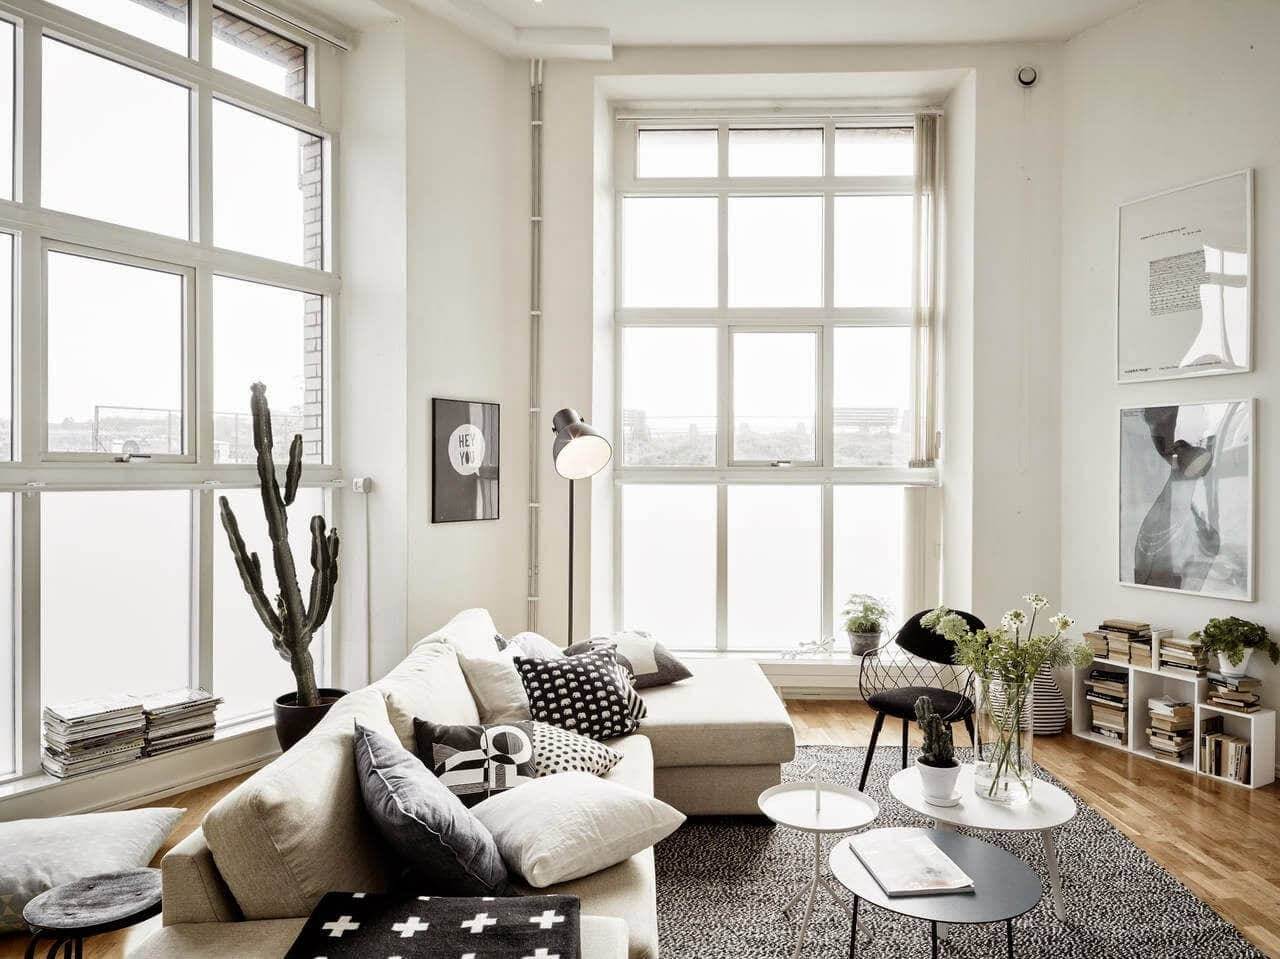 The Use of Monochromatic Interior Design to Create Stunning Interior. White casual Scandi styled living rom with plant decoration